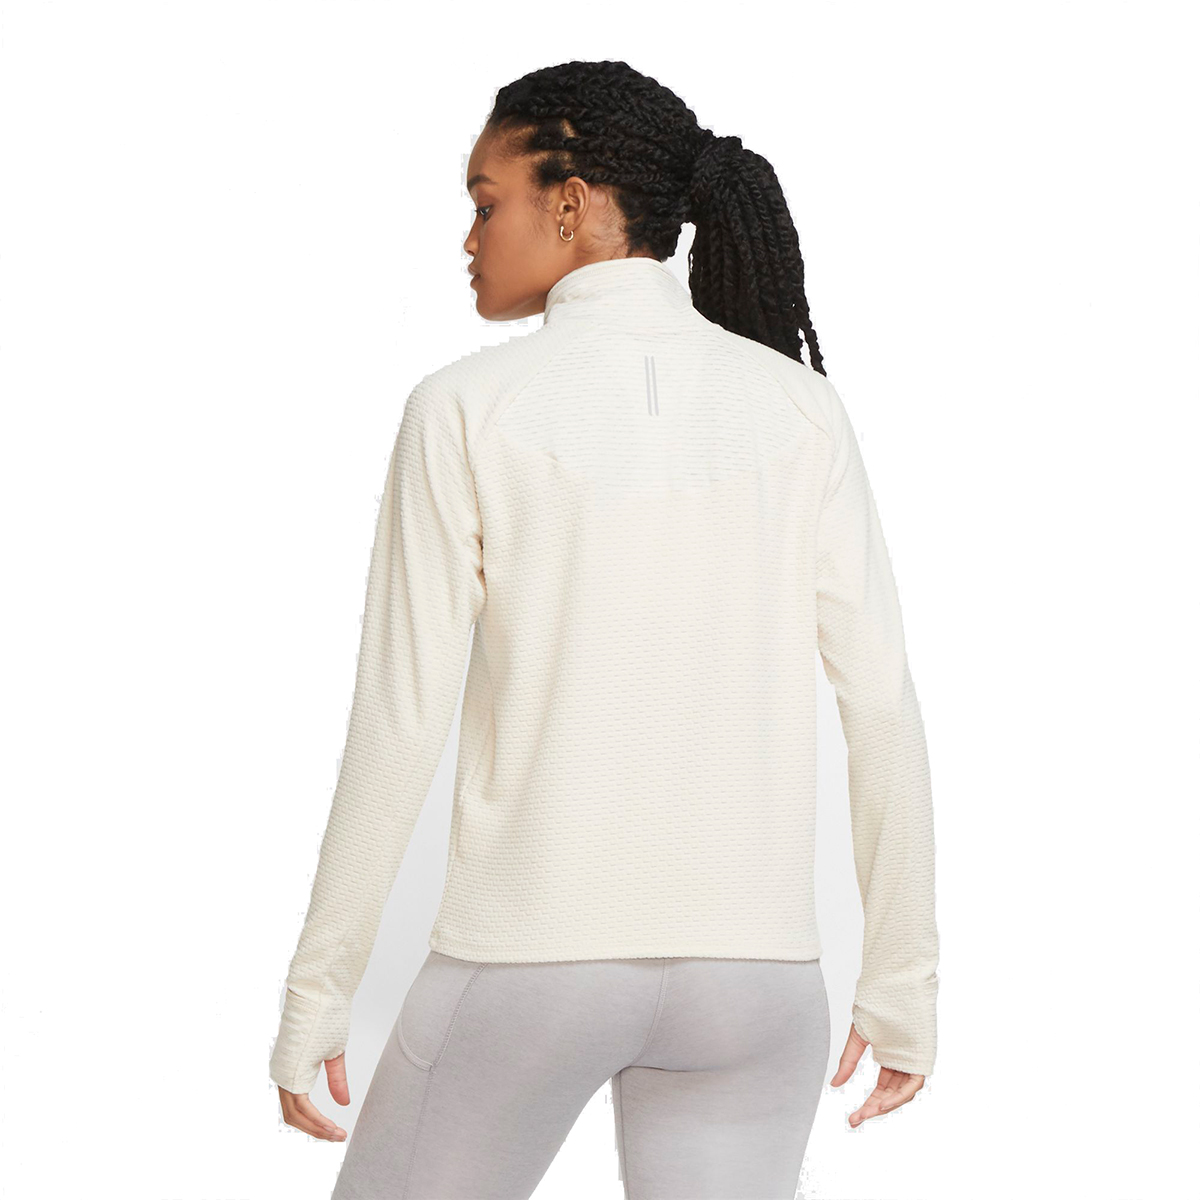 Women's Nike Sphere Half Zip Long Sleeve Shirt - Color: Oatmeal/Heather - Size: XS, Oatmeal/Heather, large, image 3